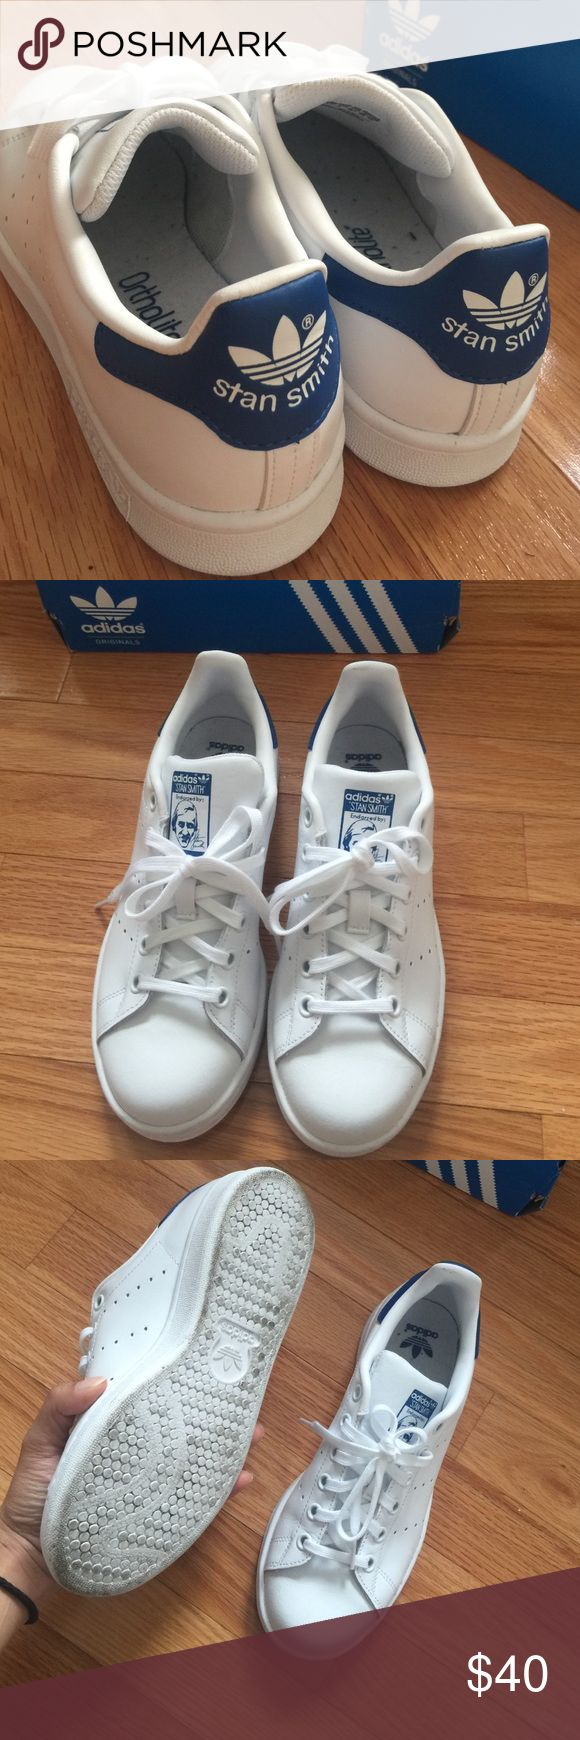 Stan Smith Shoes Lightly worn. Adidas Stan Smith Shoes (Kids sizing) Adidas Shoes Sneakers